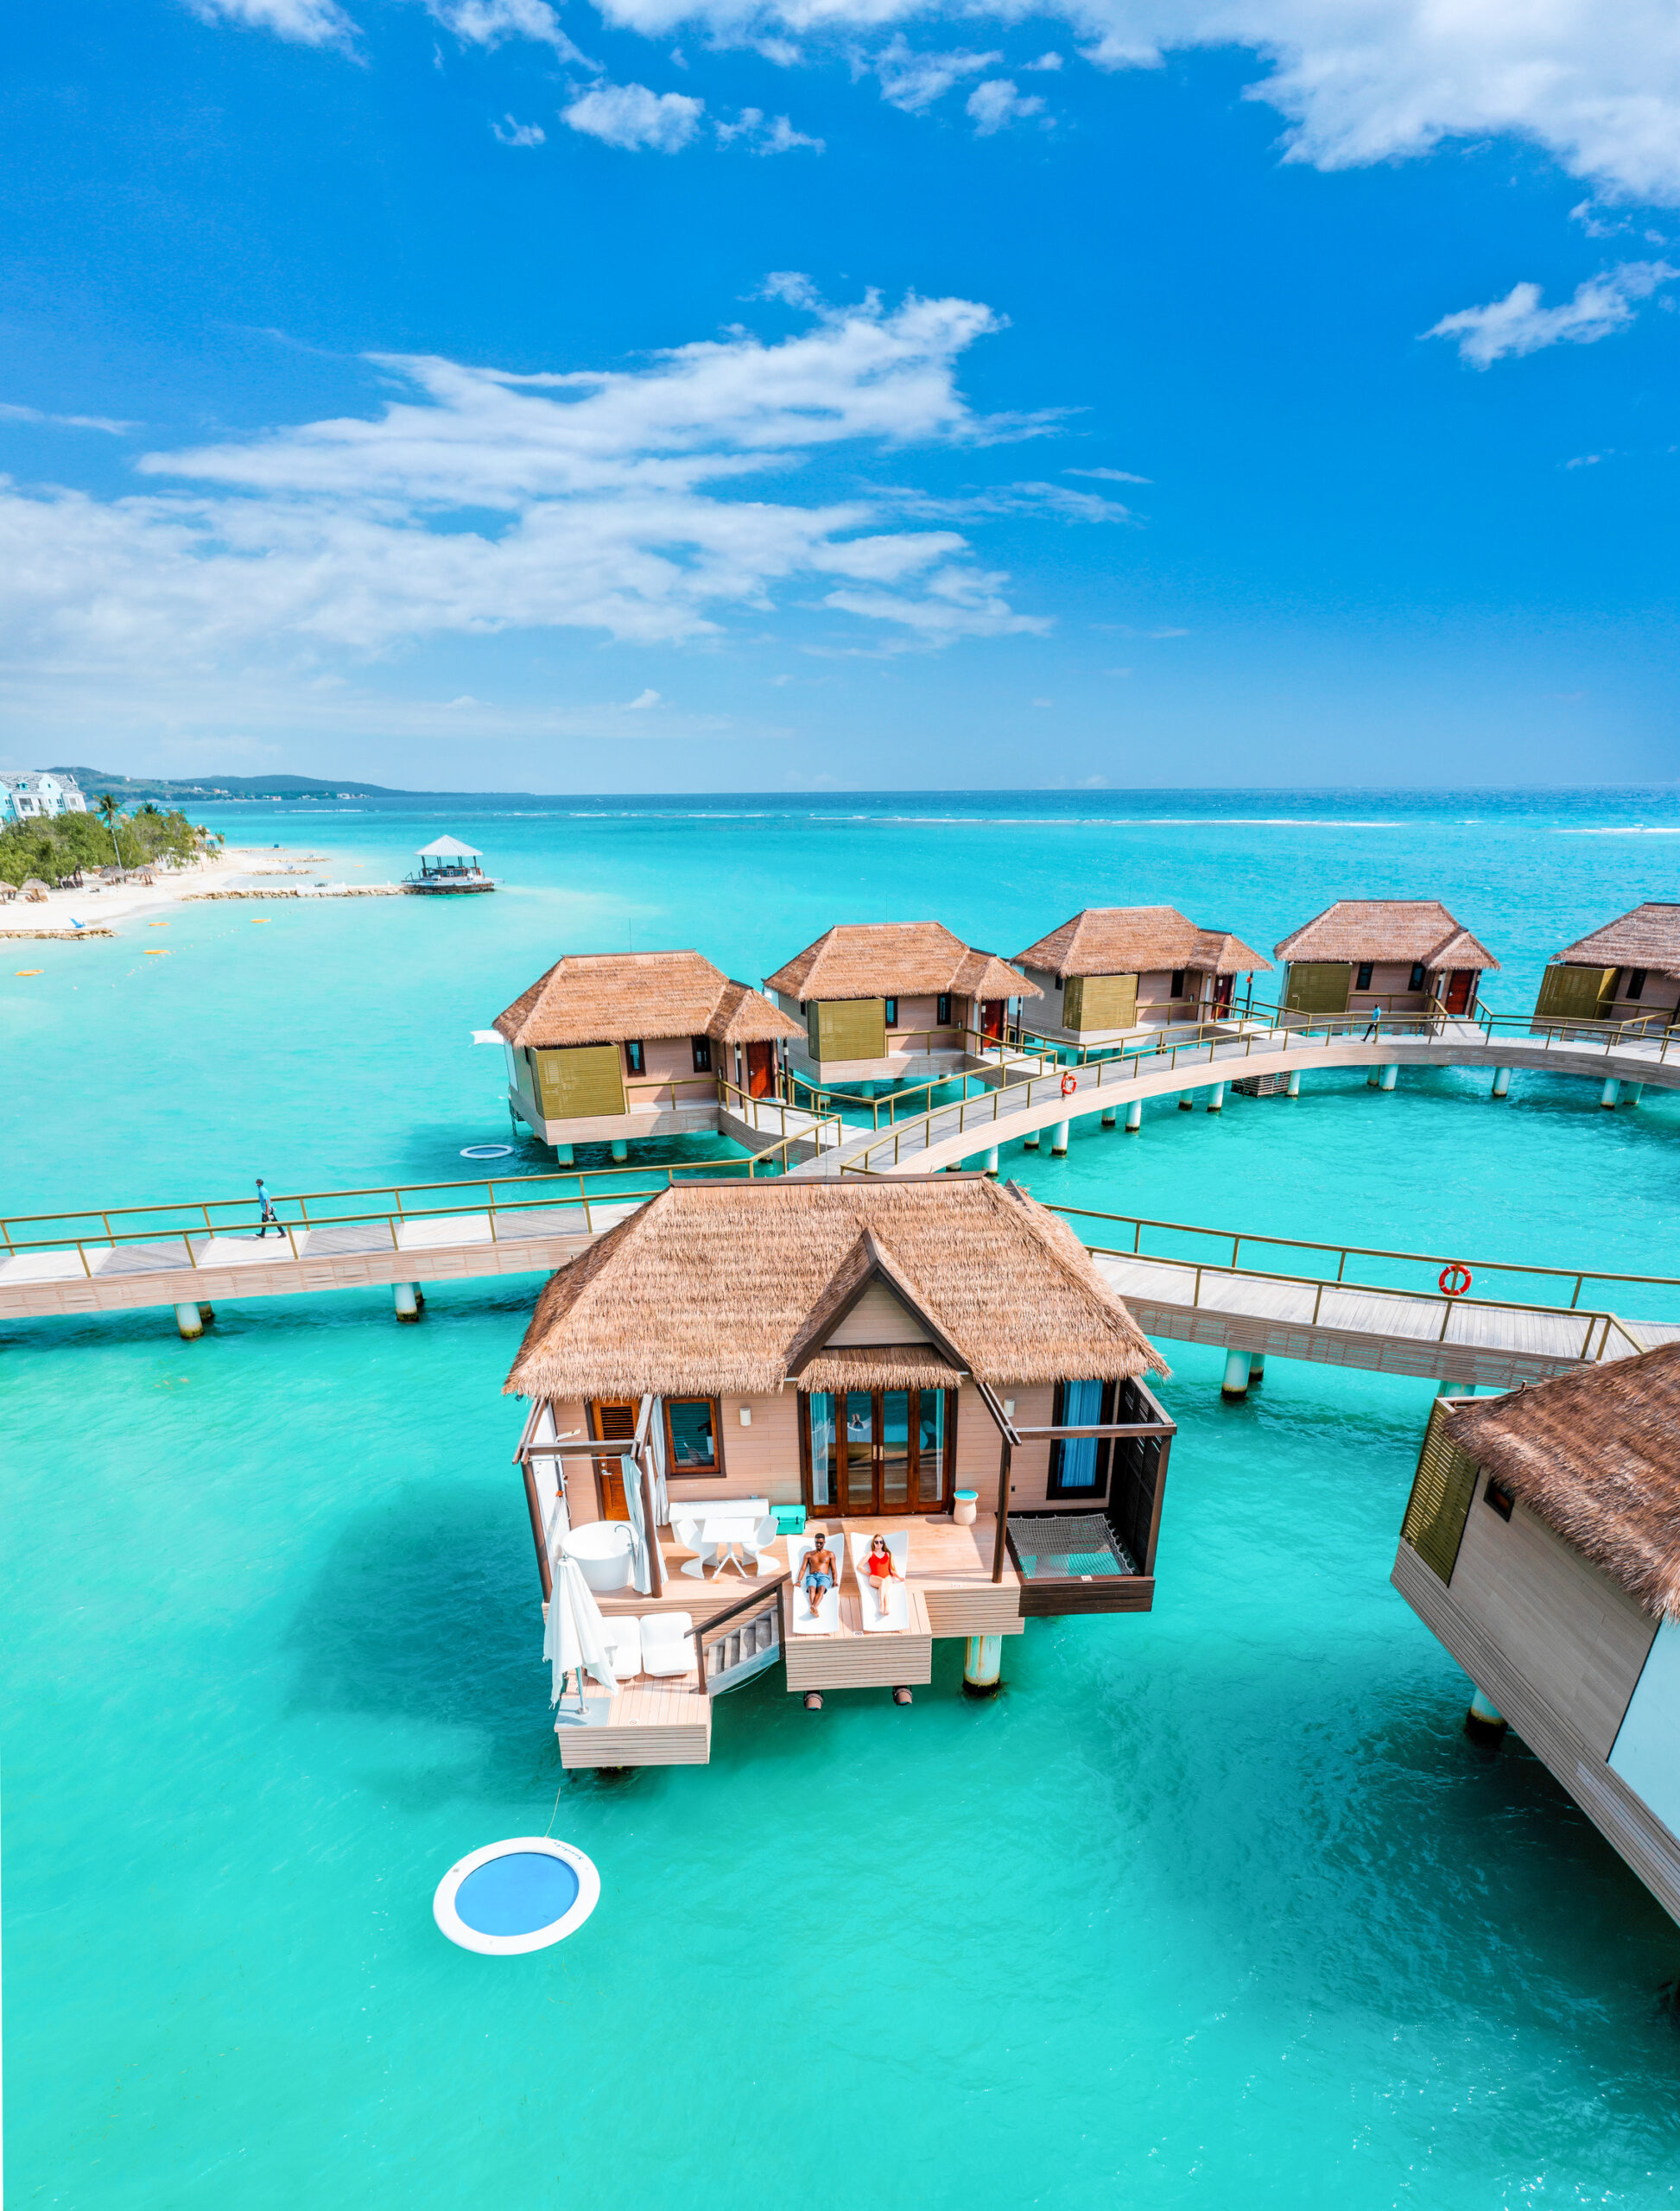 drone photo of couple sitting on an overwater bungalow in jamaica at Sandals South Coast in the caribbean